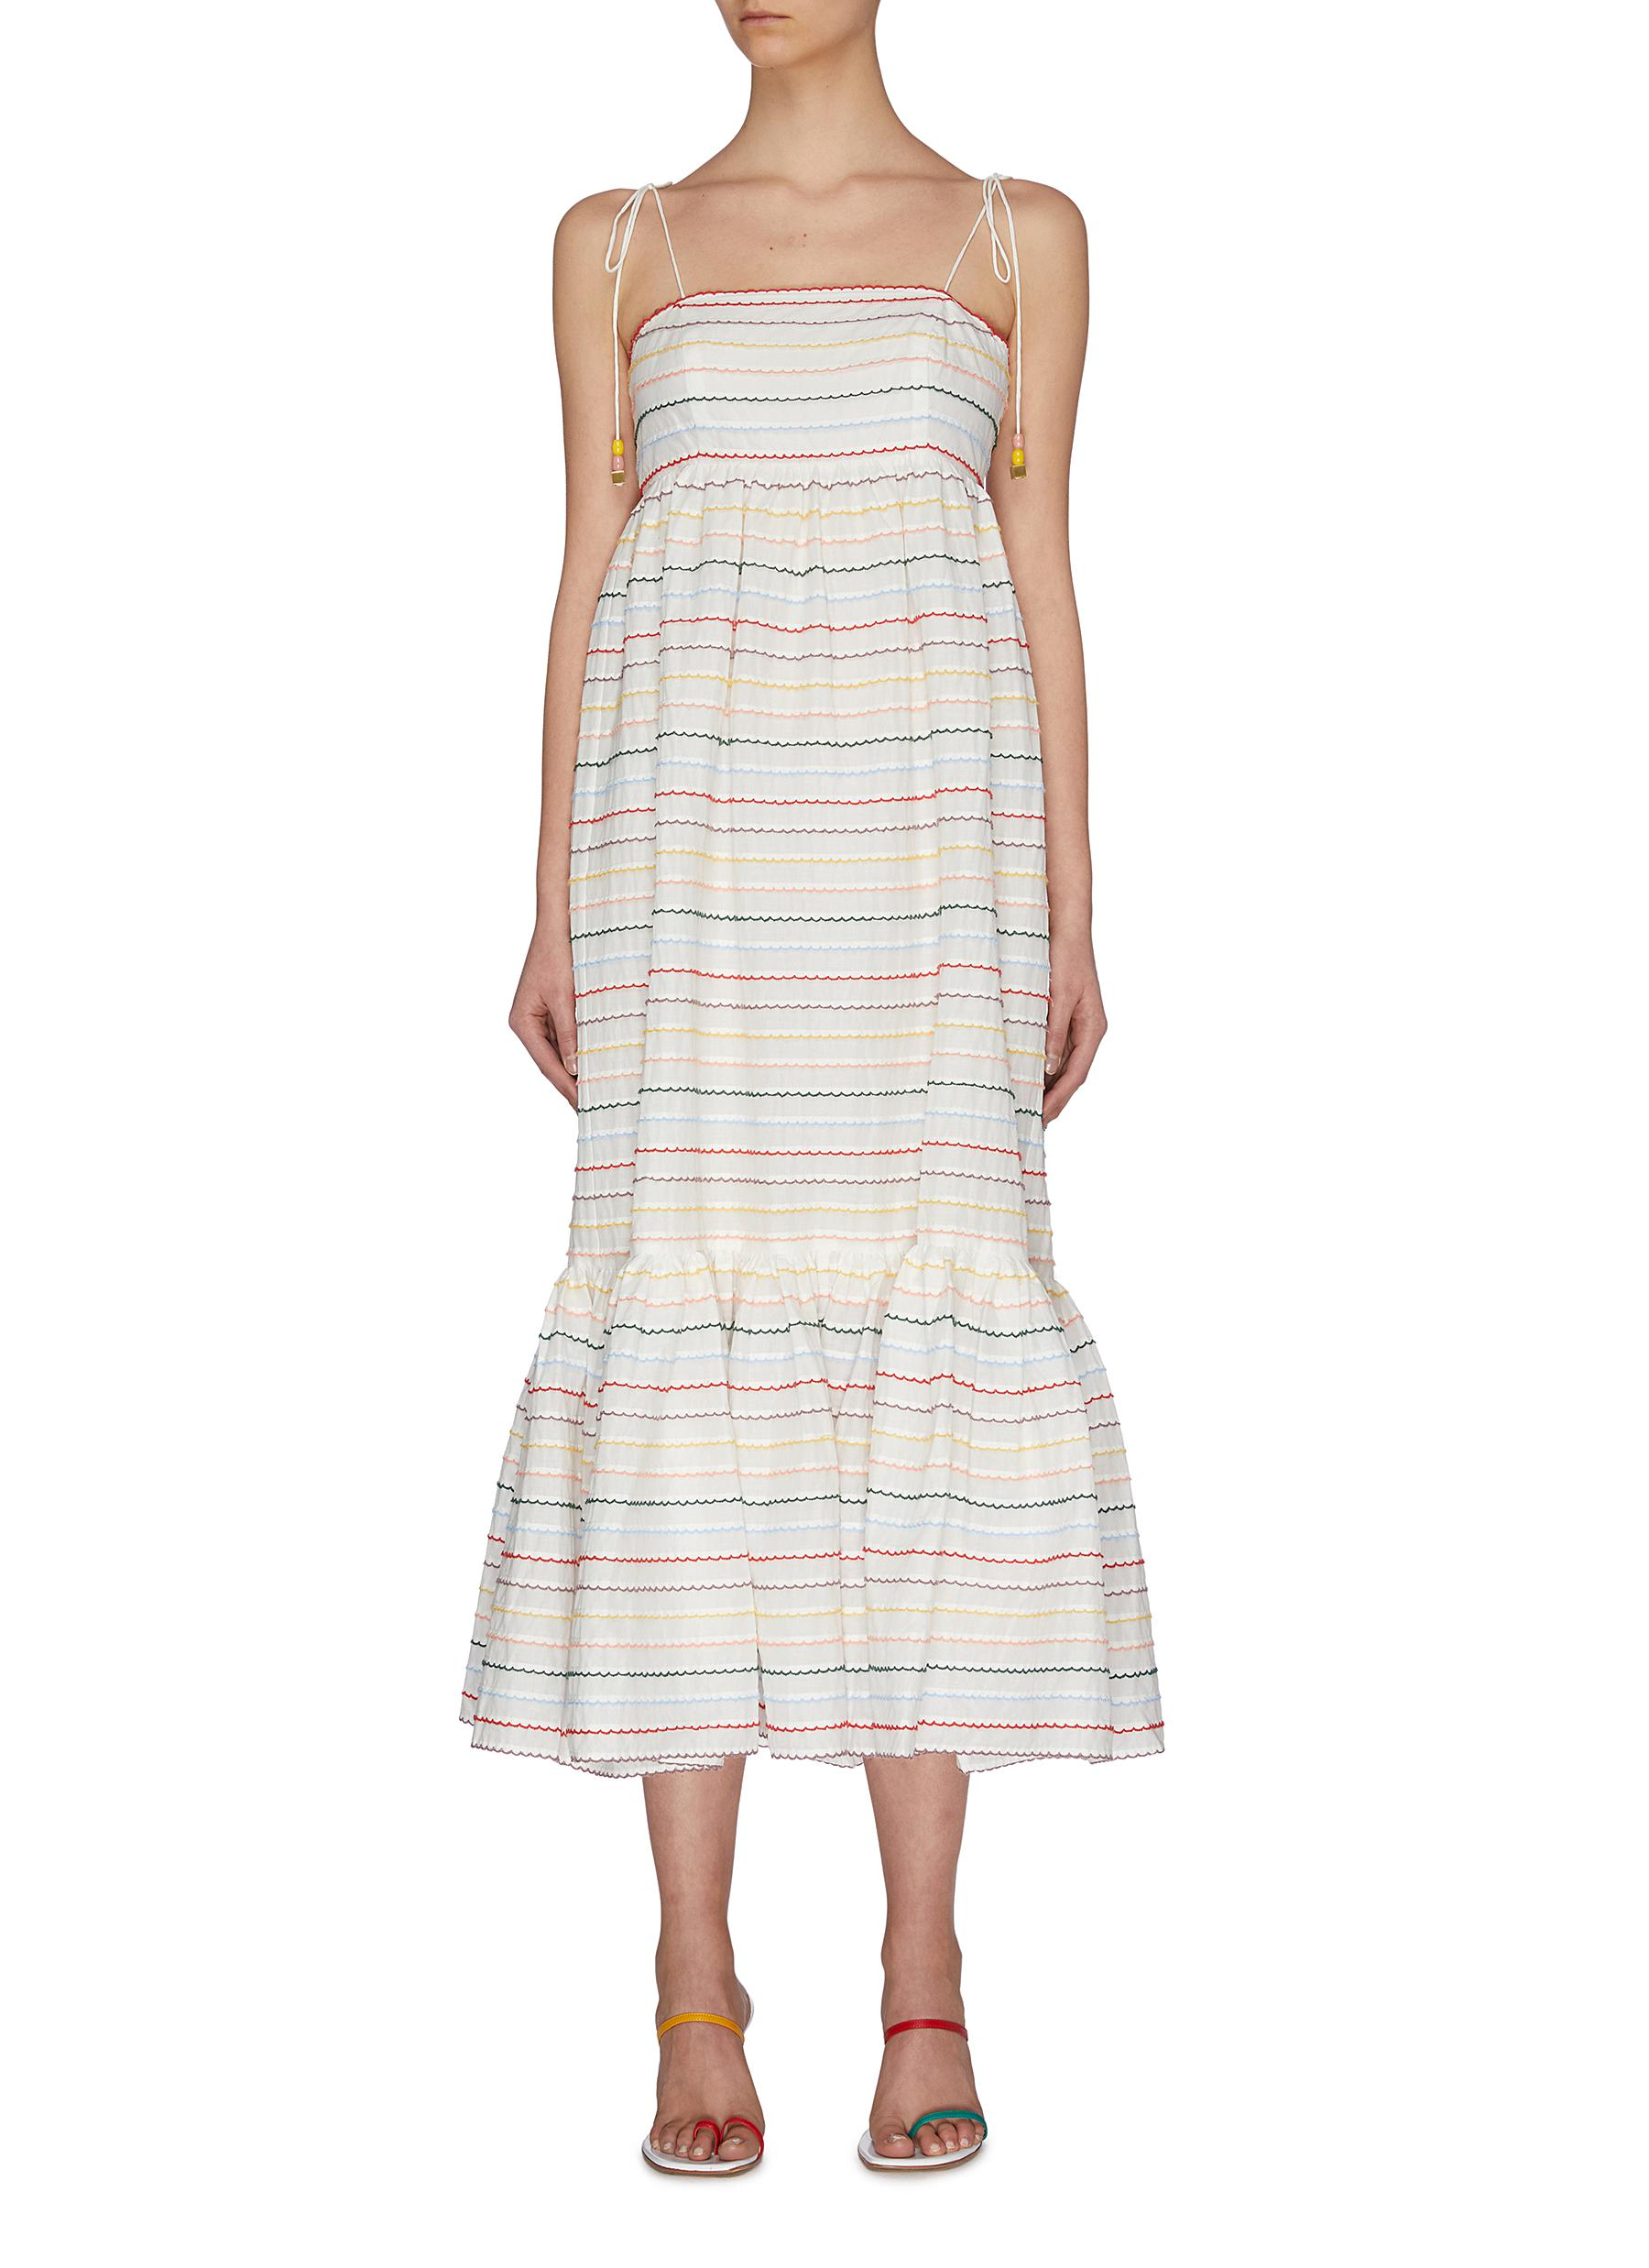 Buy Zimmermann Dresses 'Zinnia' stripe embroidered scallop sundress